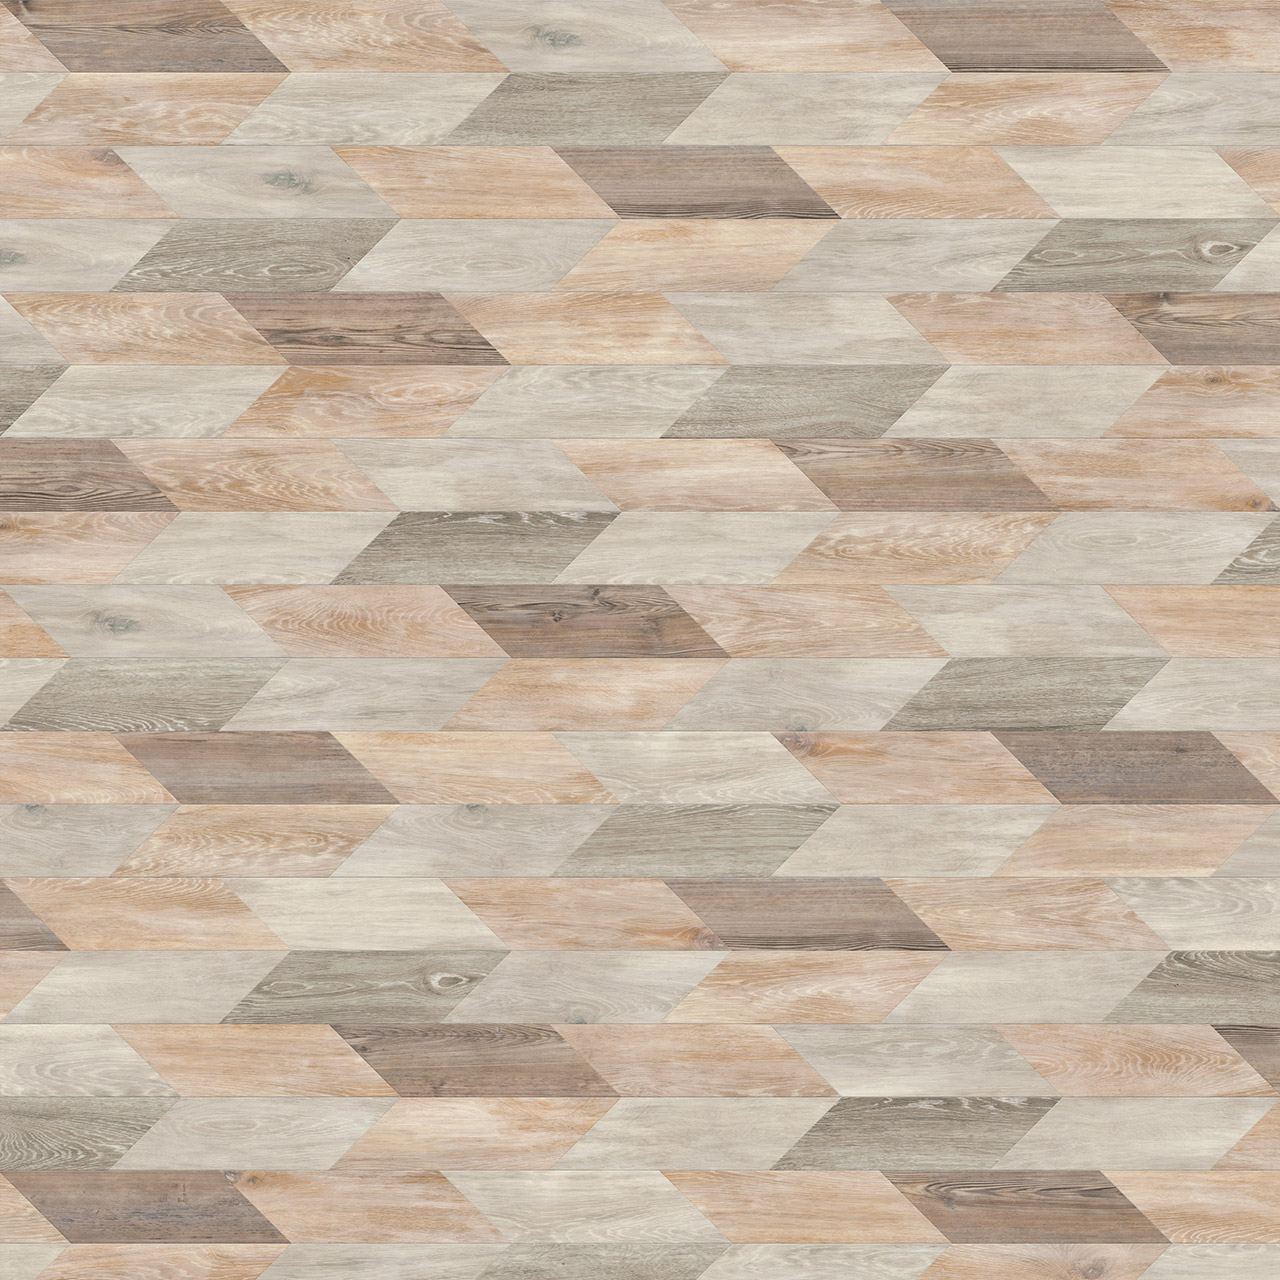 Amtico International: Shale - DC248